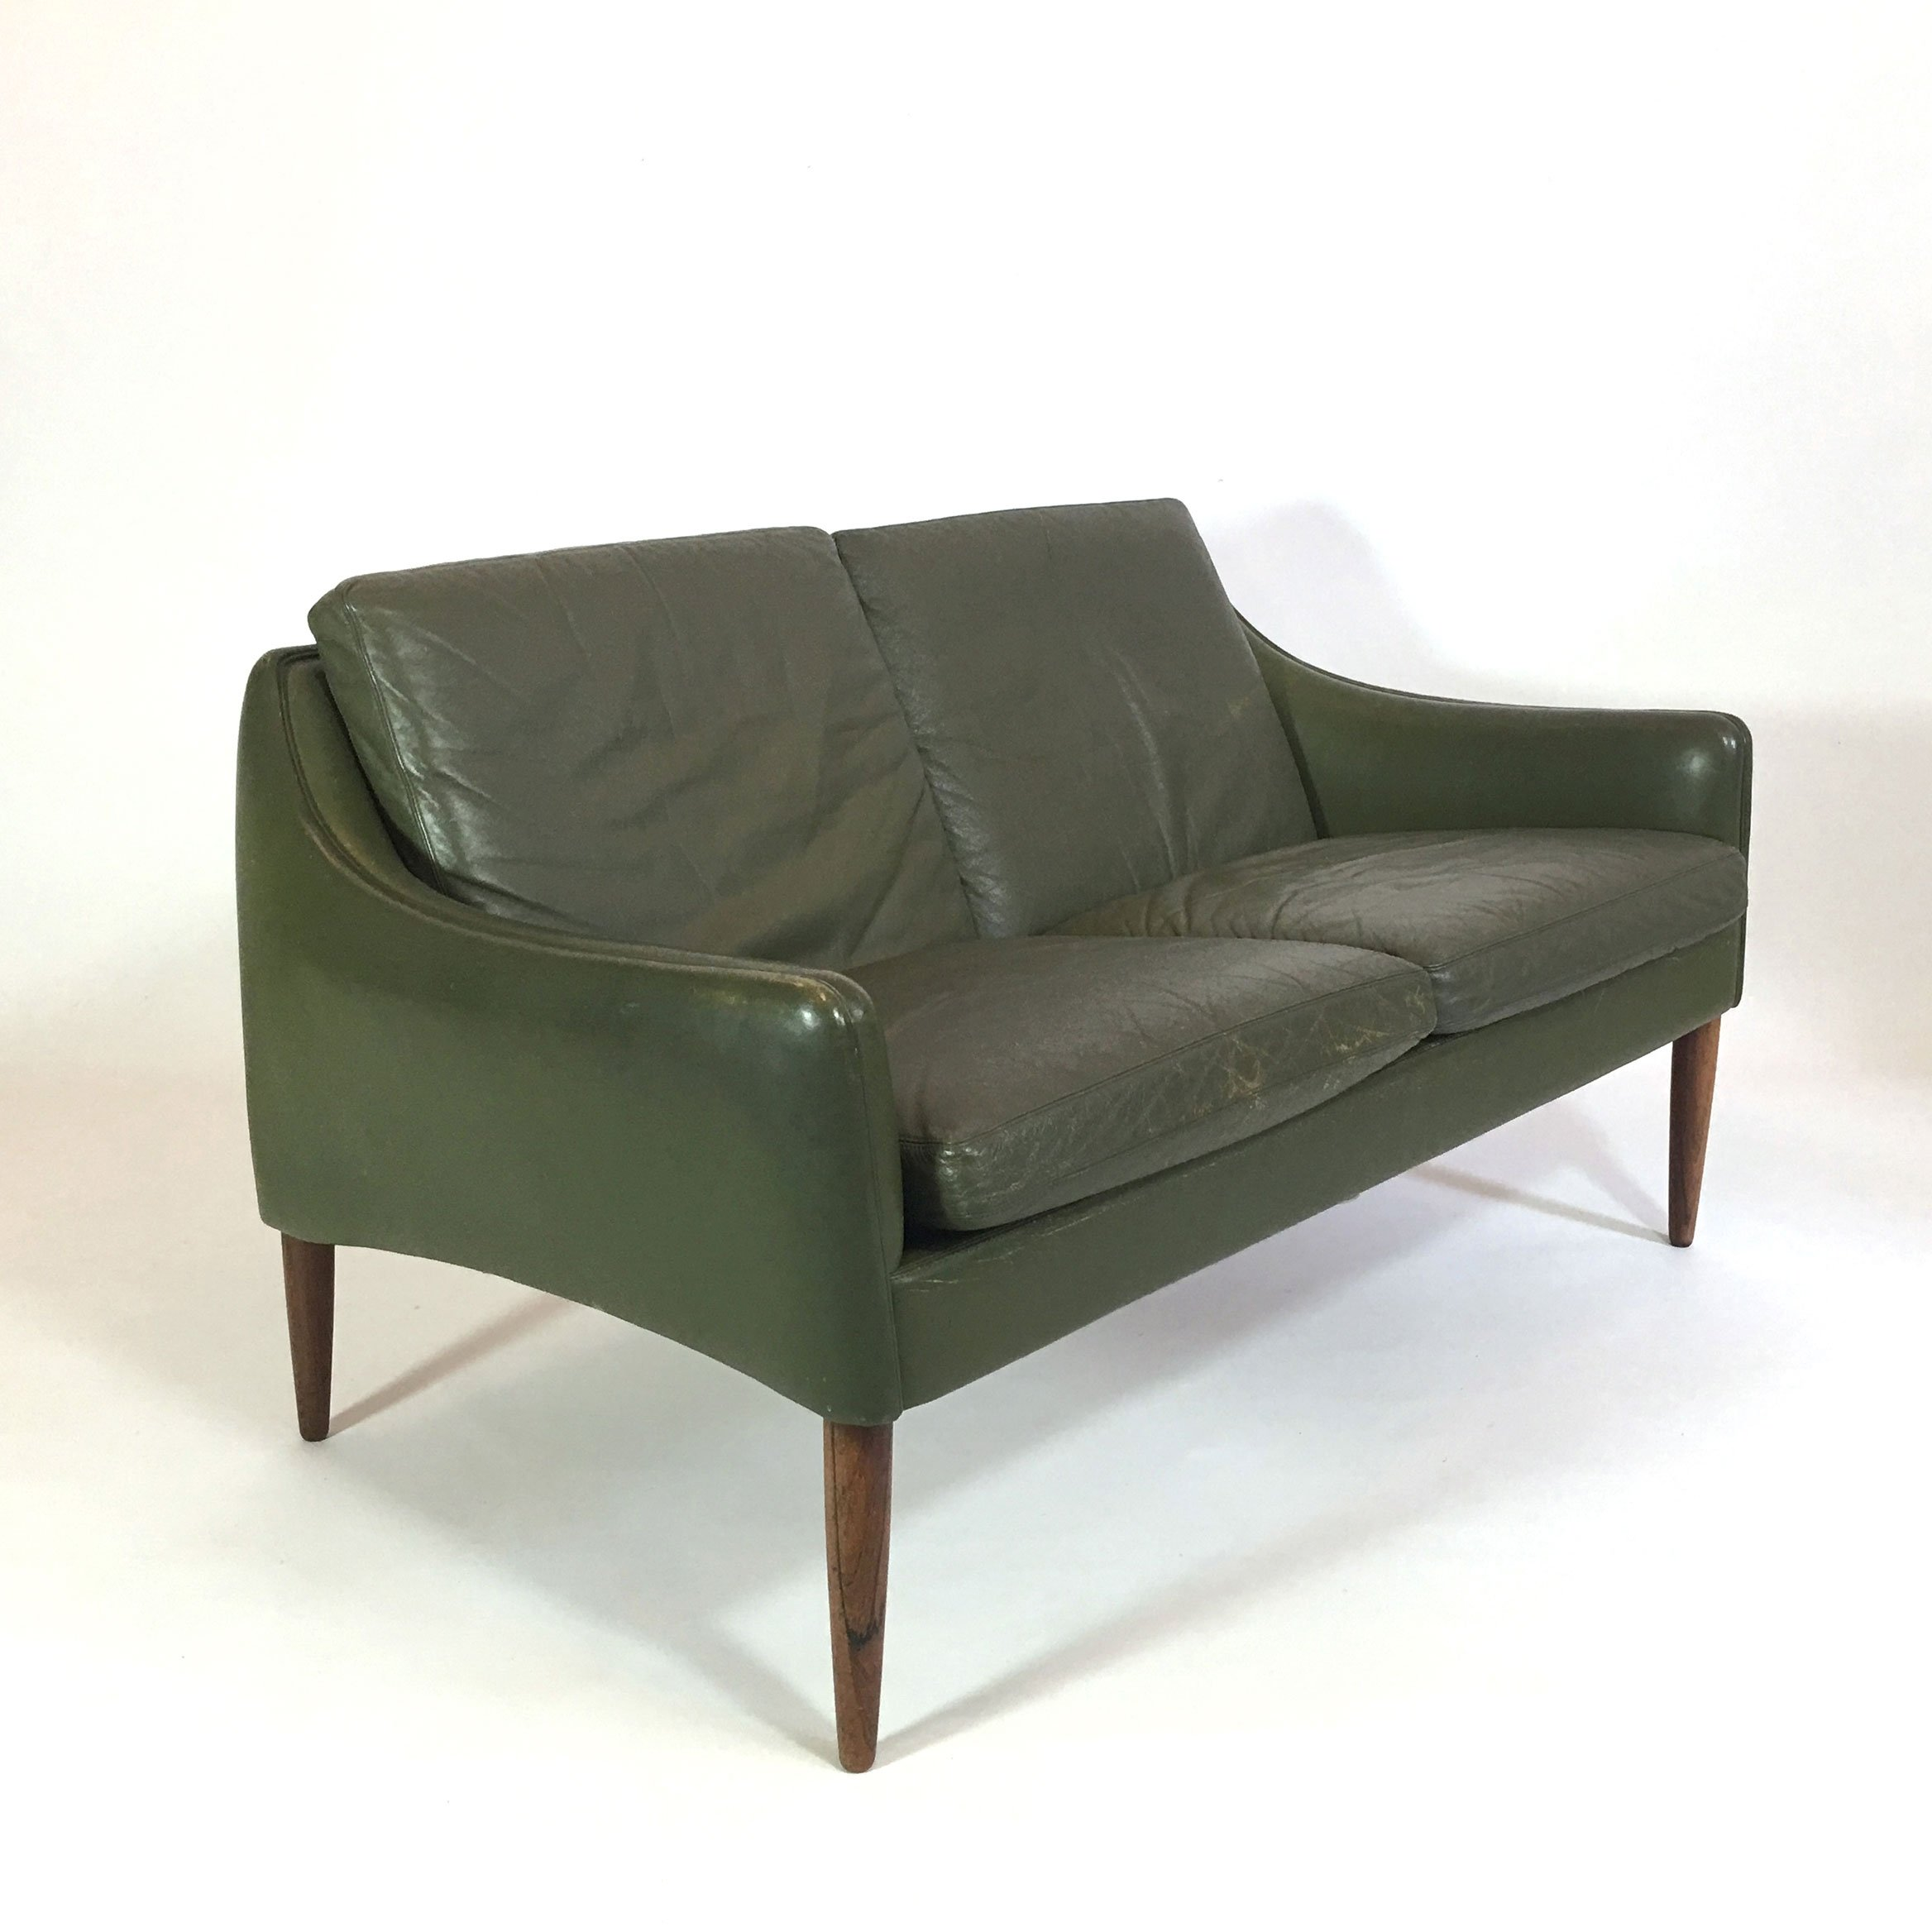 Sofa By Hans Olsen For Cs Møbler 1960s